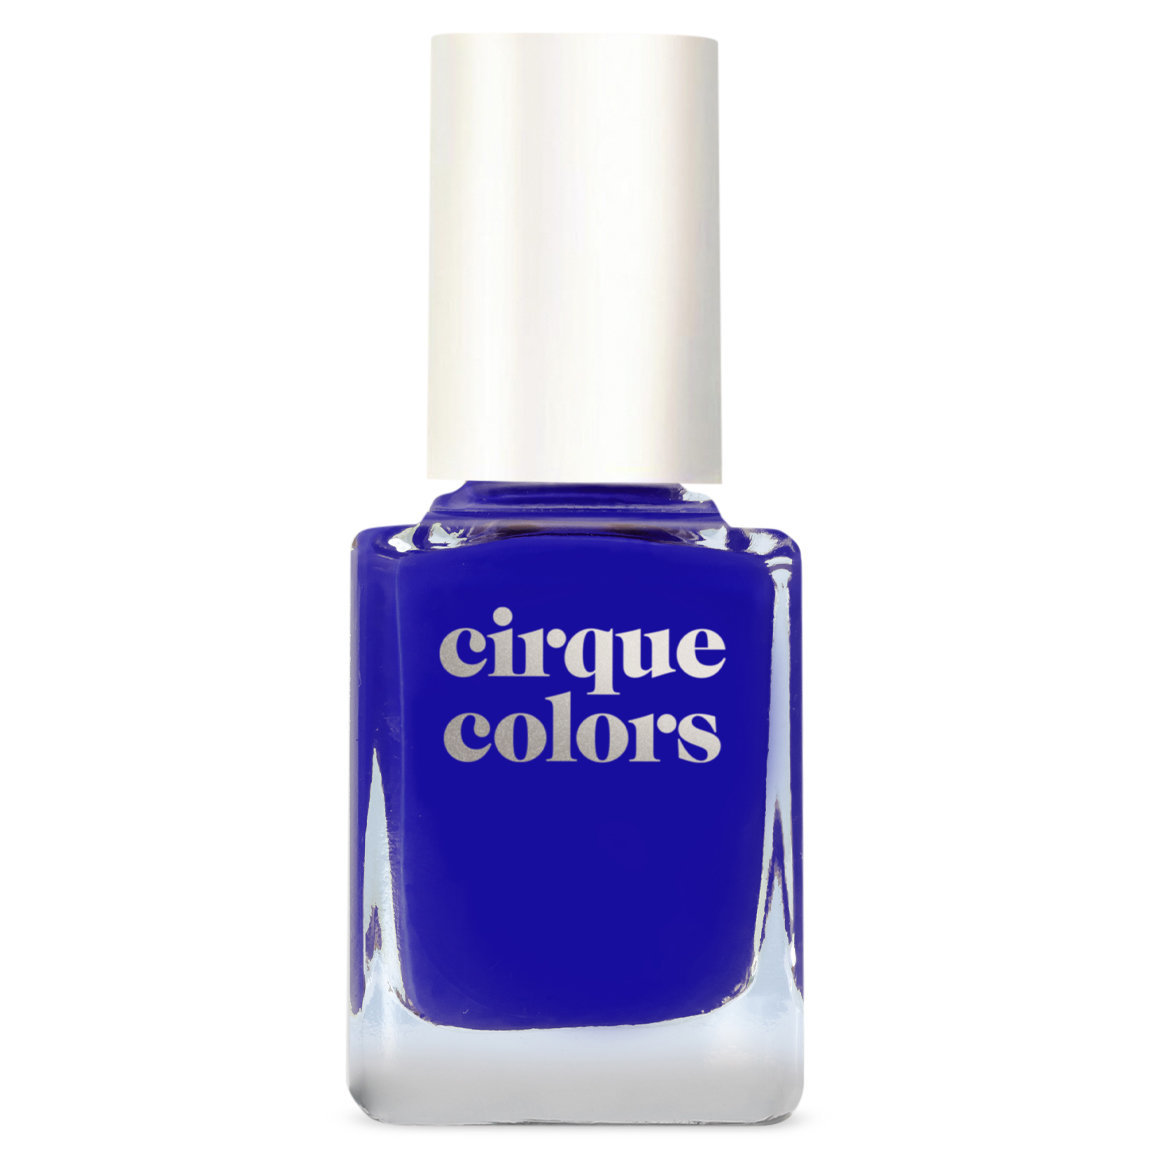 Cirque Colors Creme Nail Polish One-Night Stand alternative view 1 - product swatch.